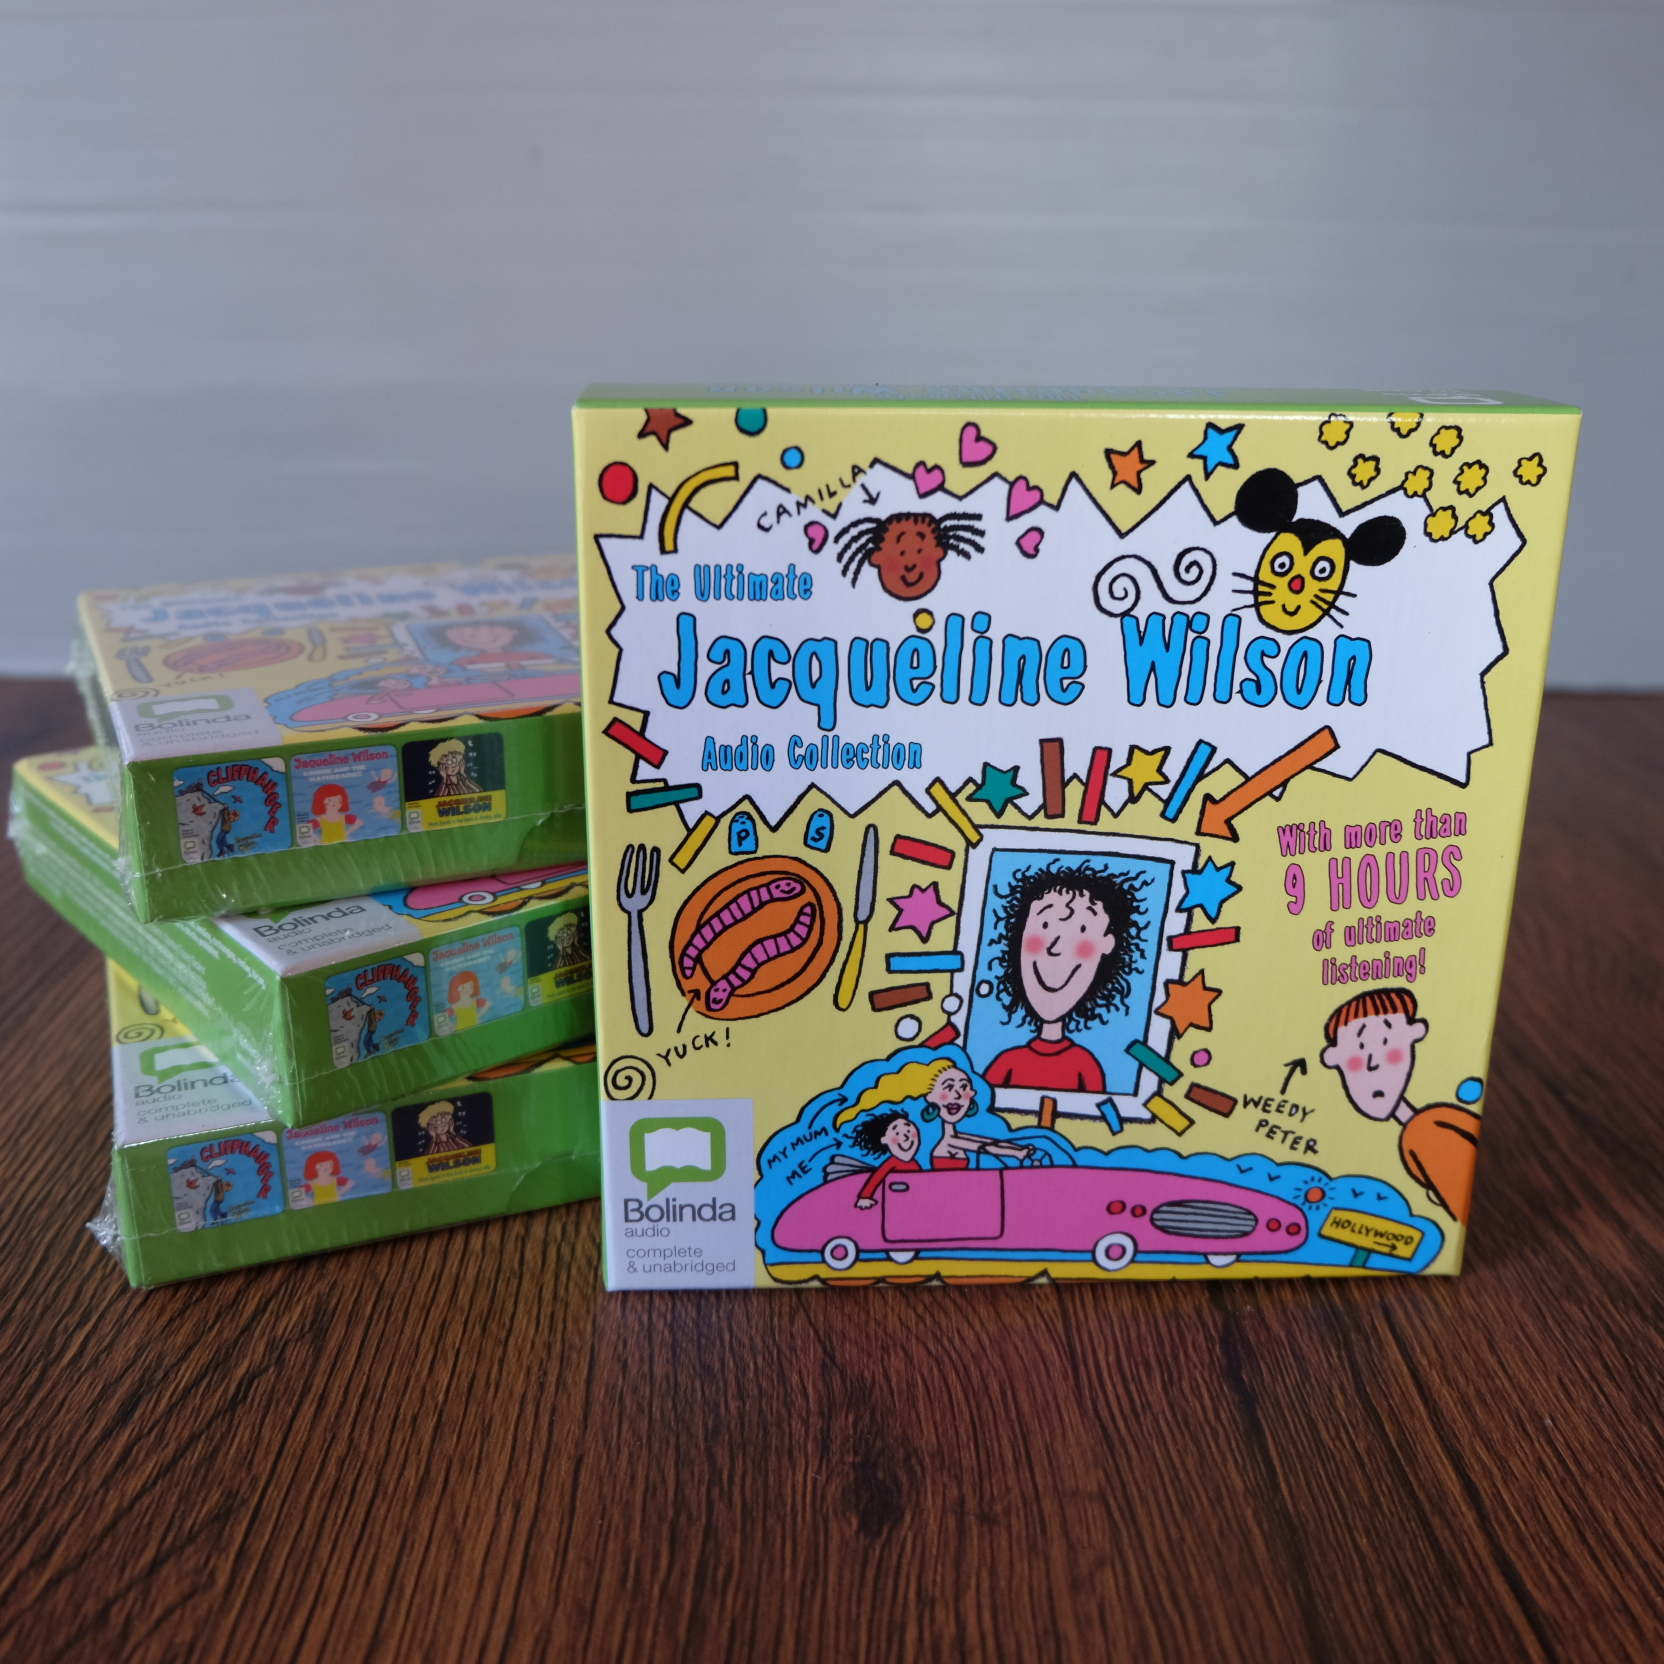 The Ultimate Jacqueline Wilson Audio Collection - 10 CDs 1200รวมอีเอมเอส